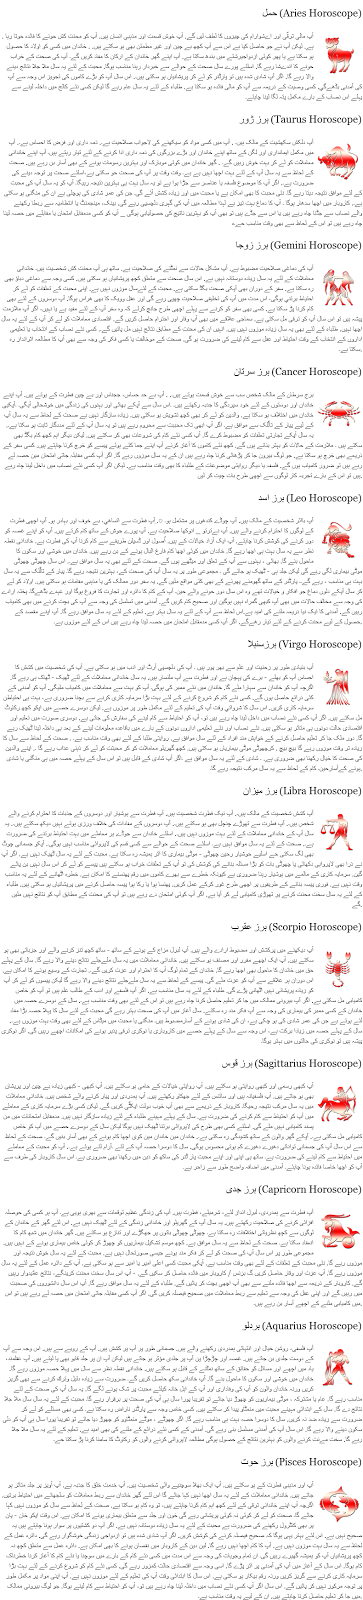 2013 Horoscope in Urdu - Rashifal Bhavishya in Urdu 2013